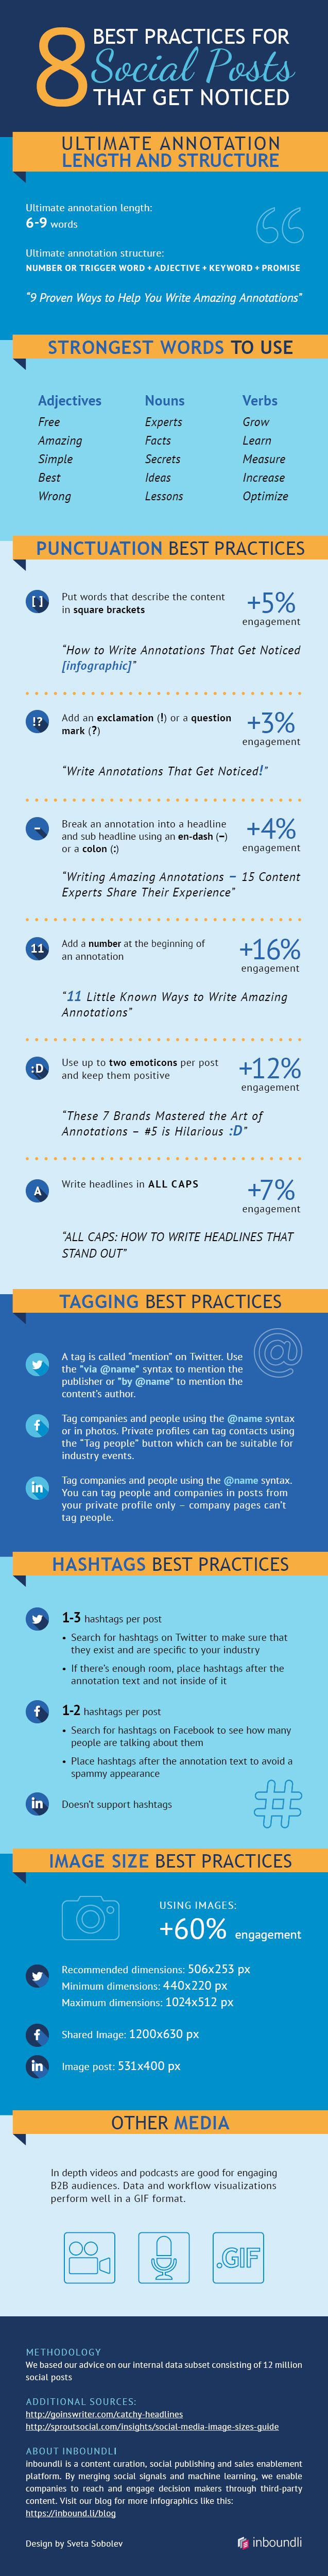 Want Your Social Media Posts to Stand Out? 8 Best Practices to Follow [Infographic]